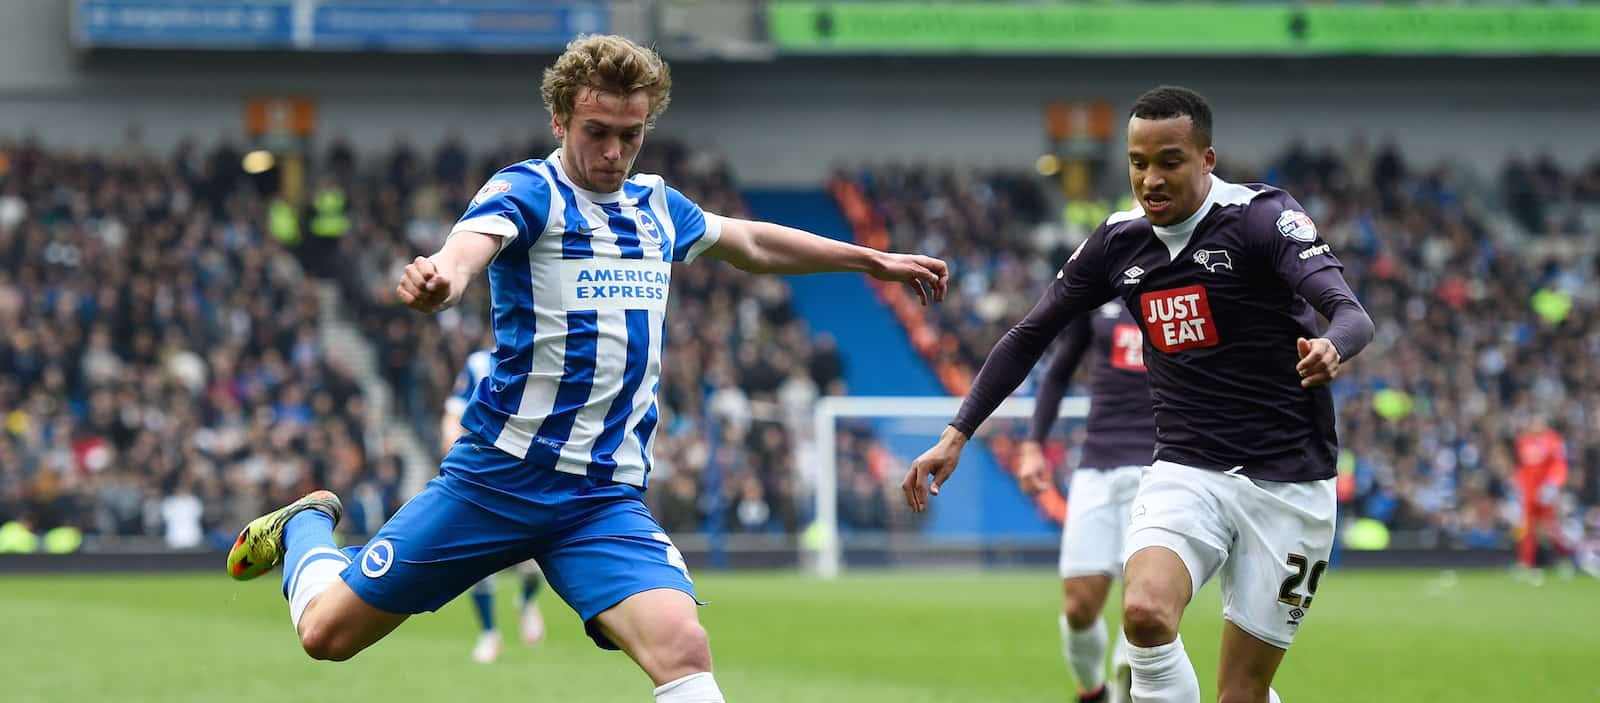 Sheffield United interested in signing James Wilson on loan – report